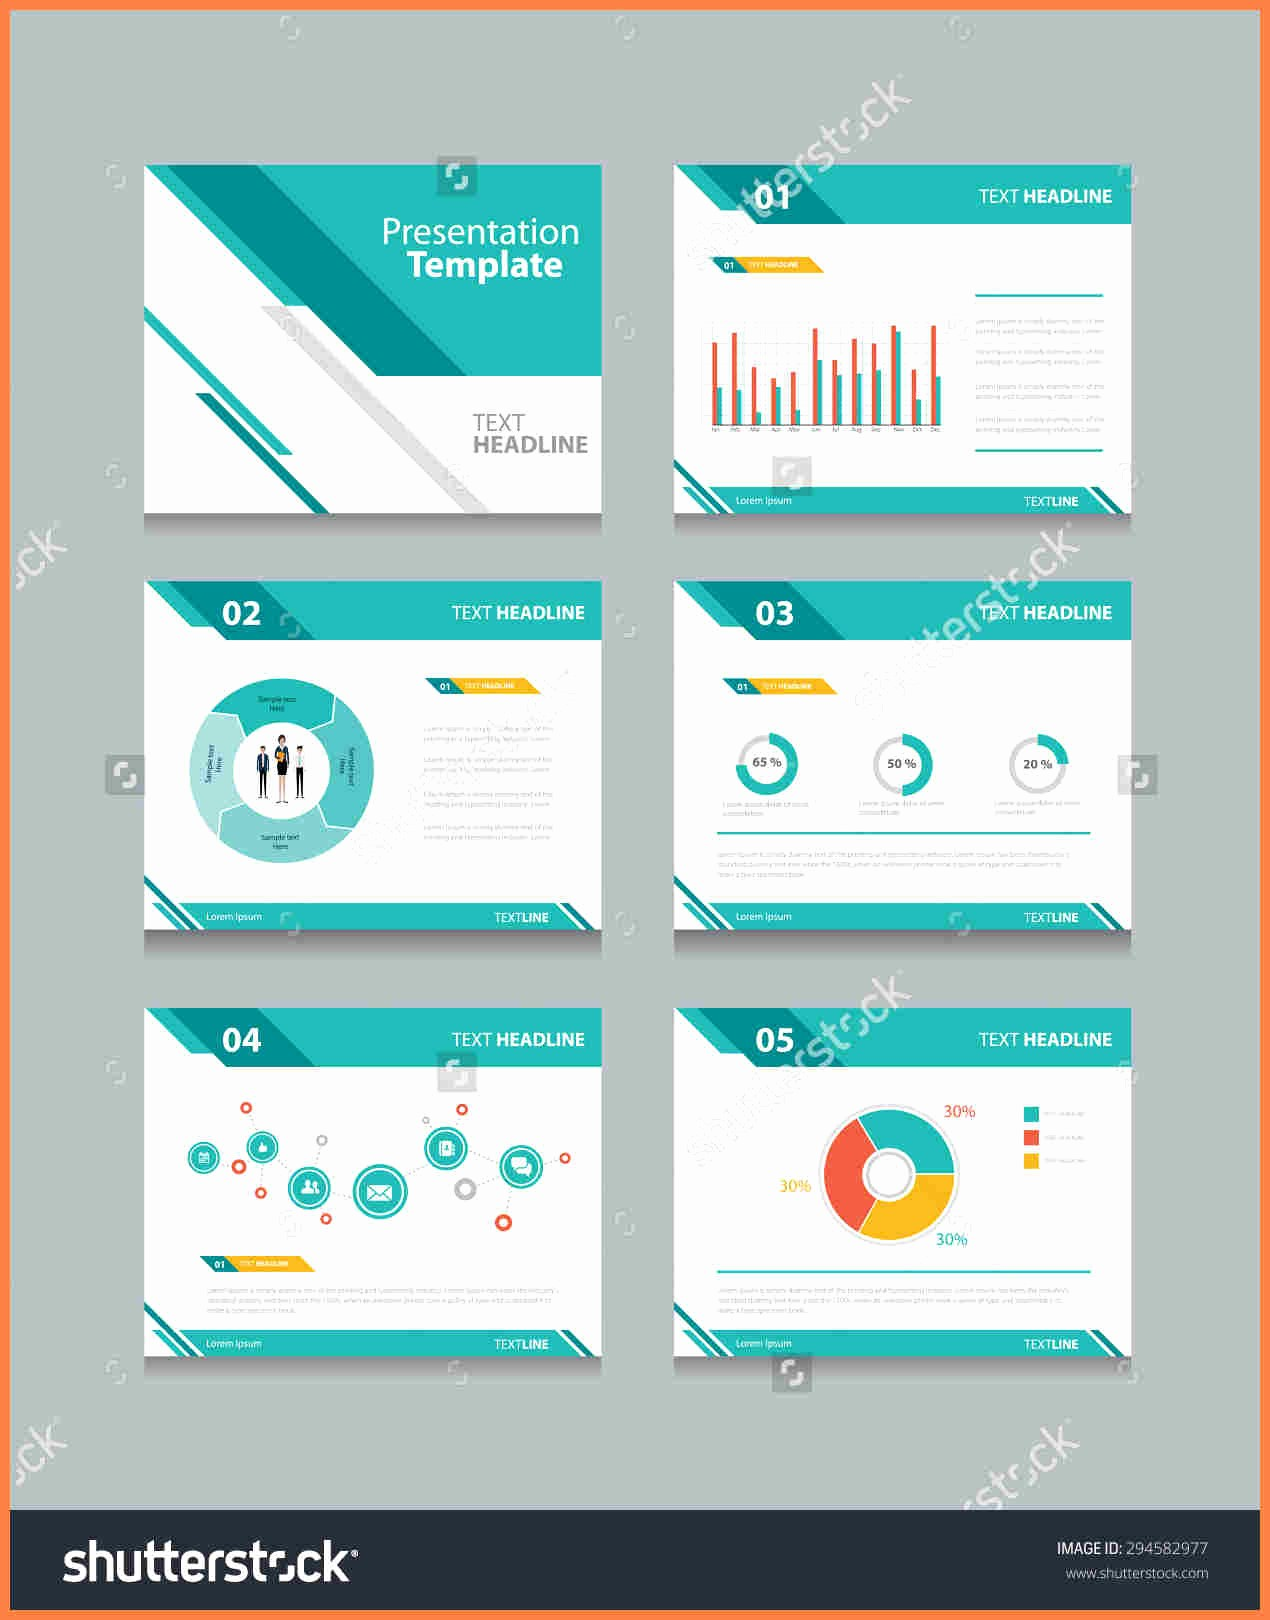 Ppt Template for Business Presentation Awesome 8 Pany Powerpoint Template